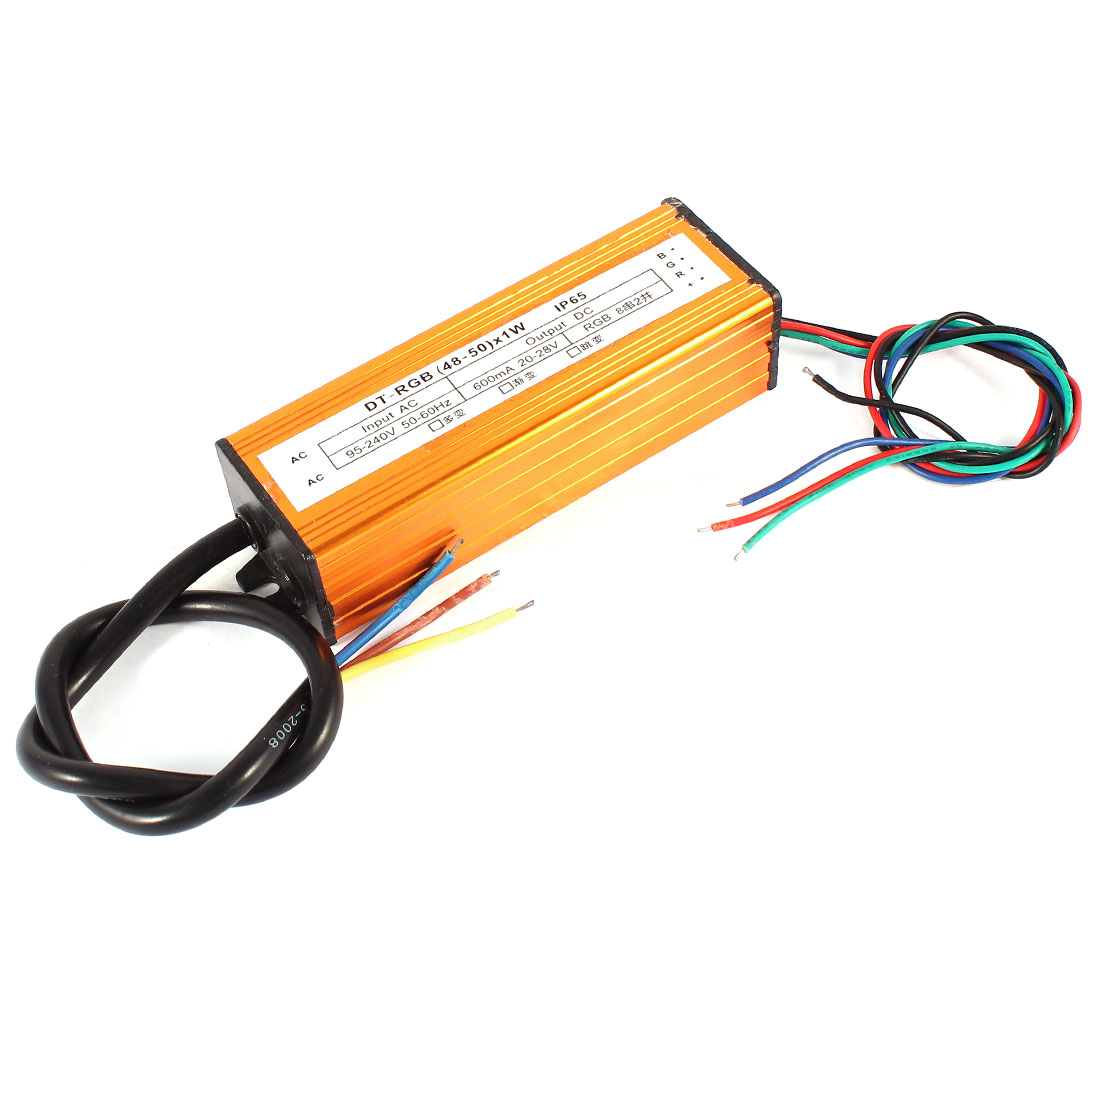 (48-50)x1W Waterproof LED Driver Transformer Power Supply for RGB Light Strip